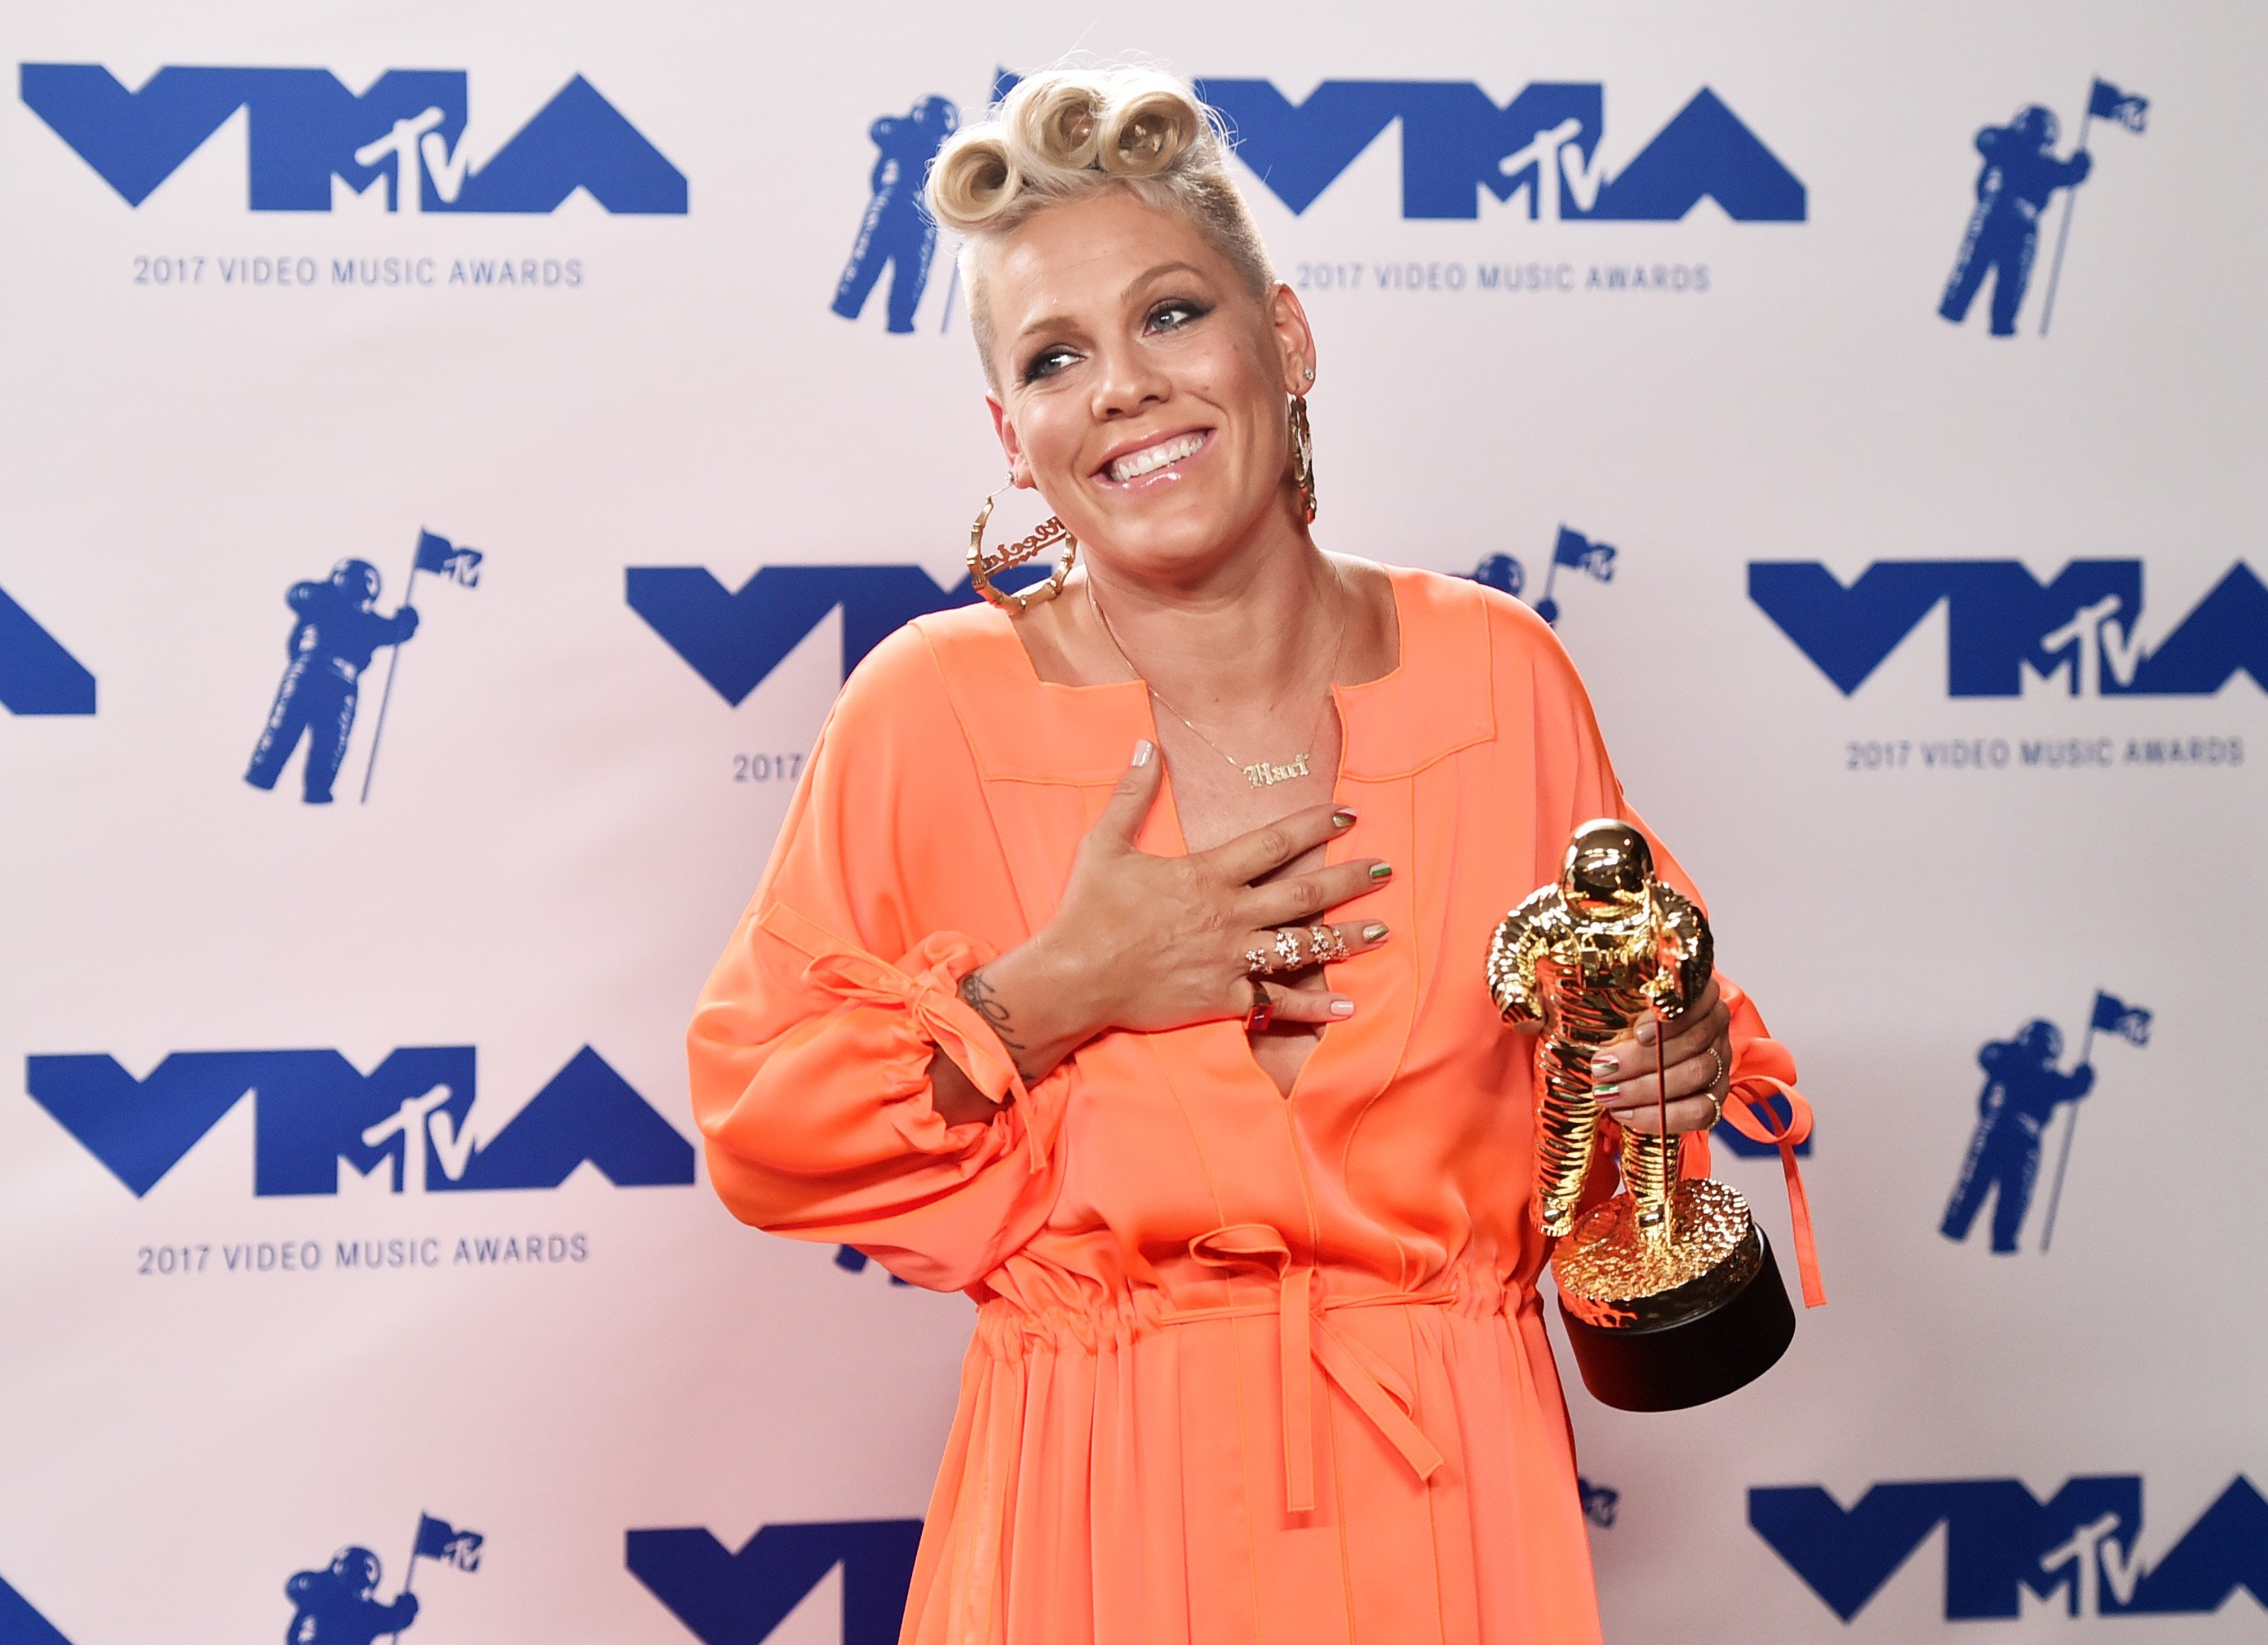 Singer Pink faces the press after she was awarded with a Michael Jackson Video Vanguard Award in 2017.   Photo: Getty Images